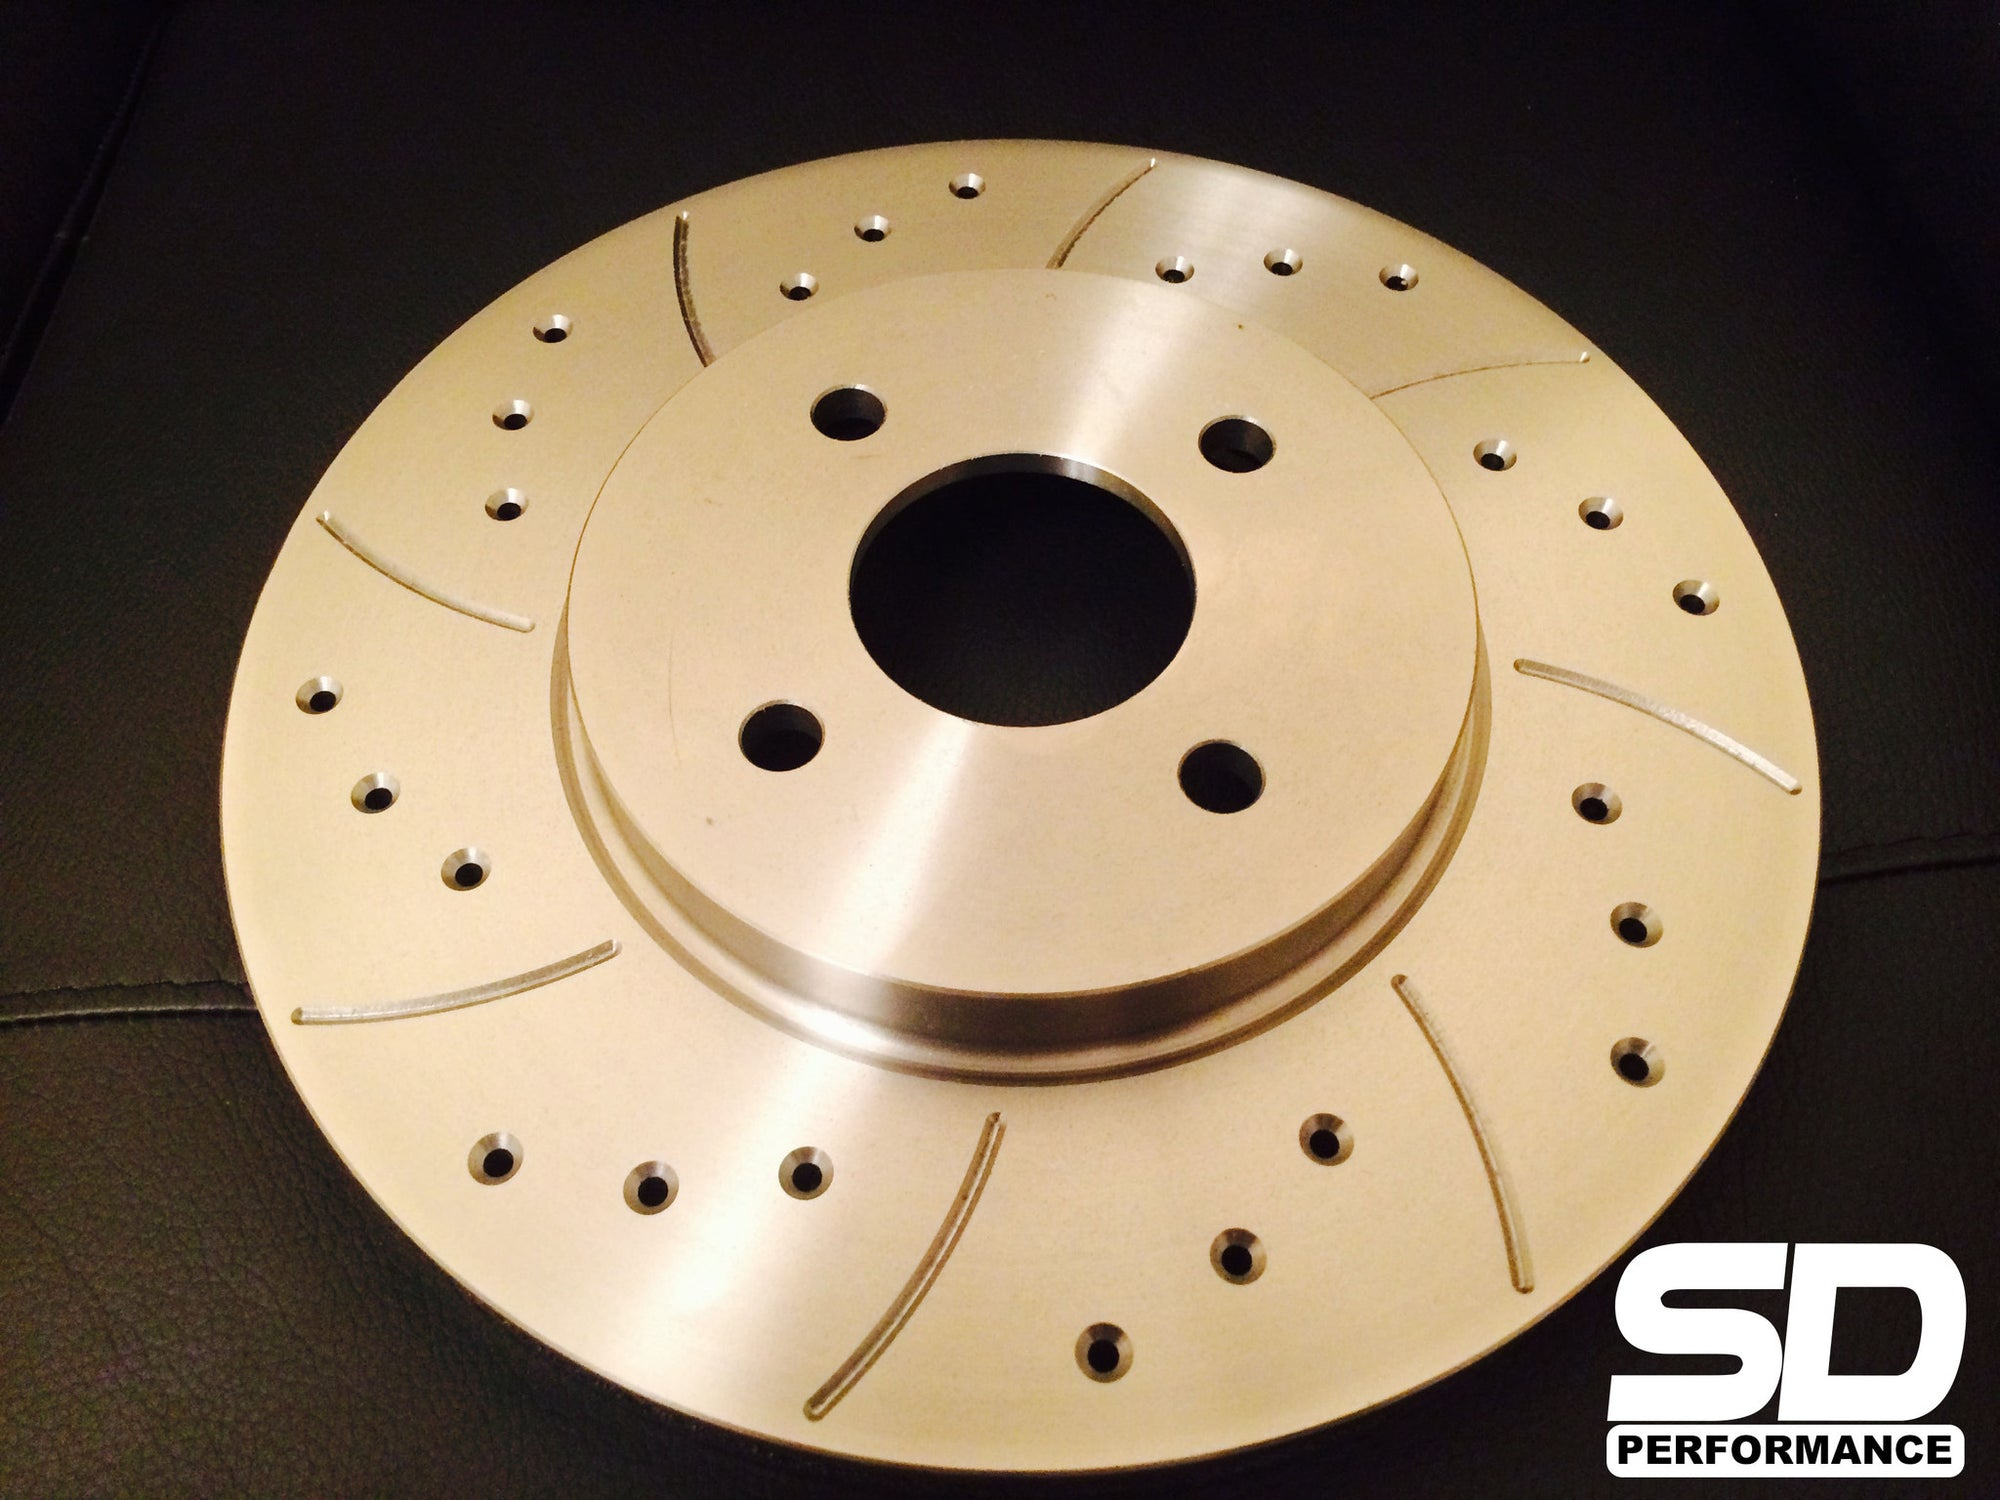 SD Performance Fiesta MK6 300mm conversion Performance discs - Drilled and Grooved